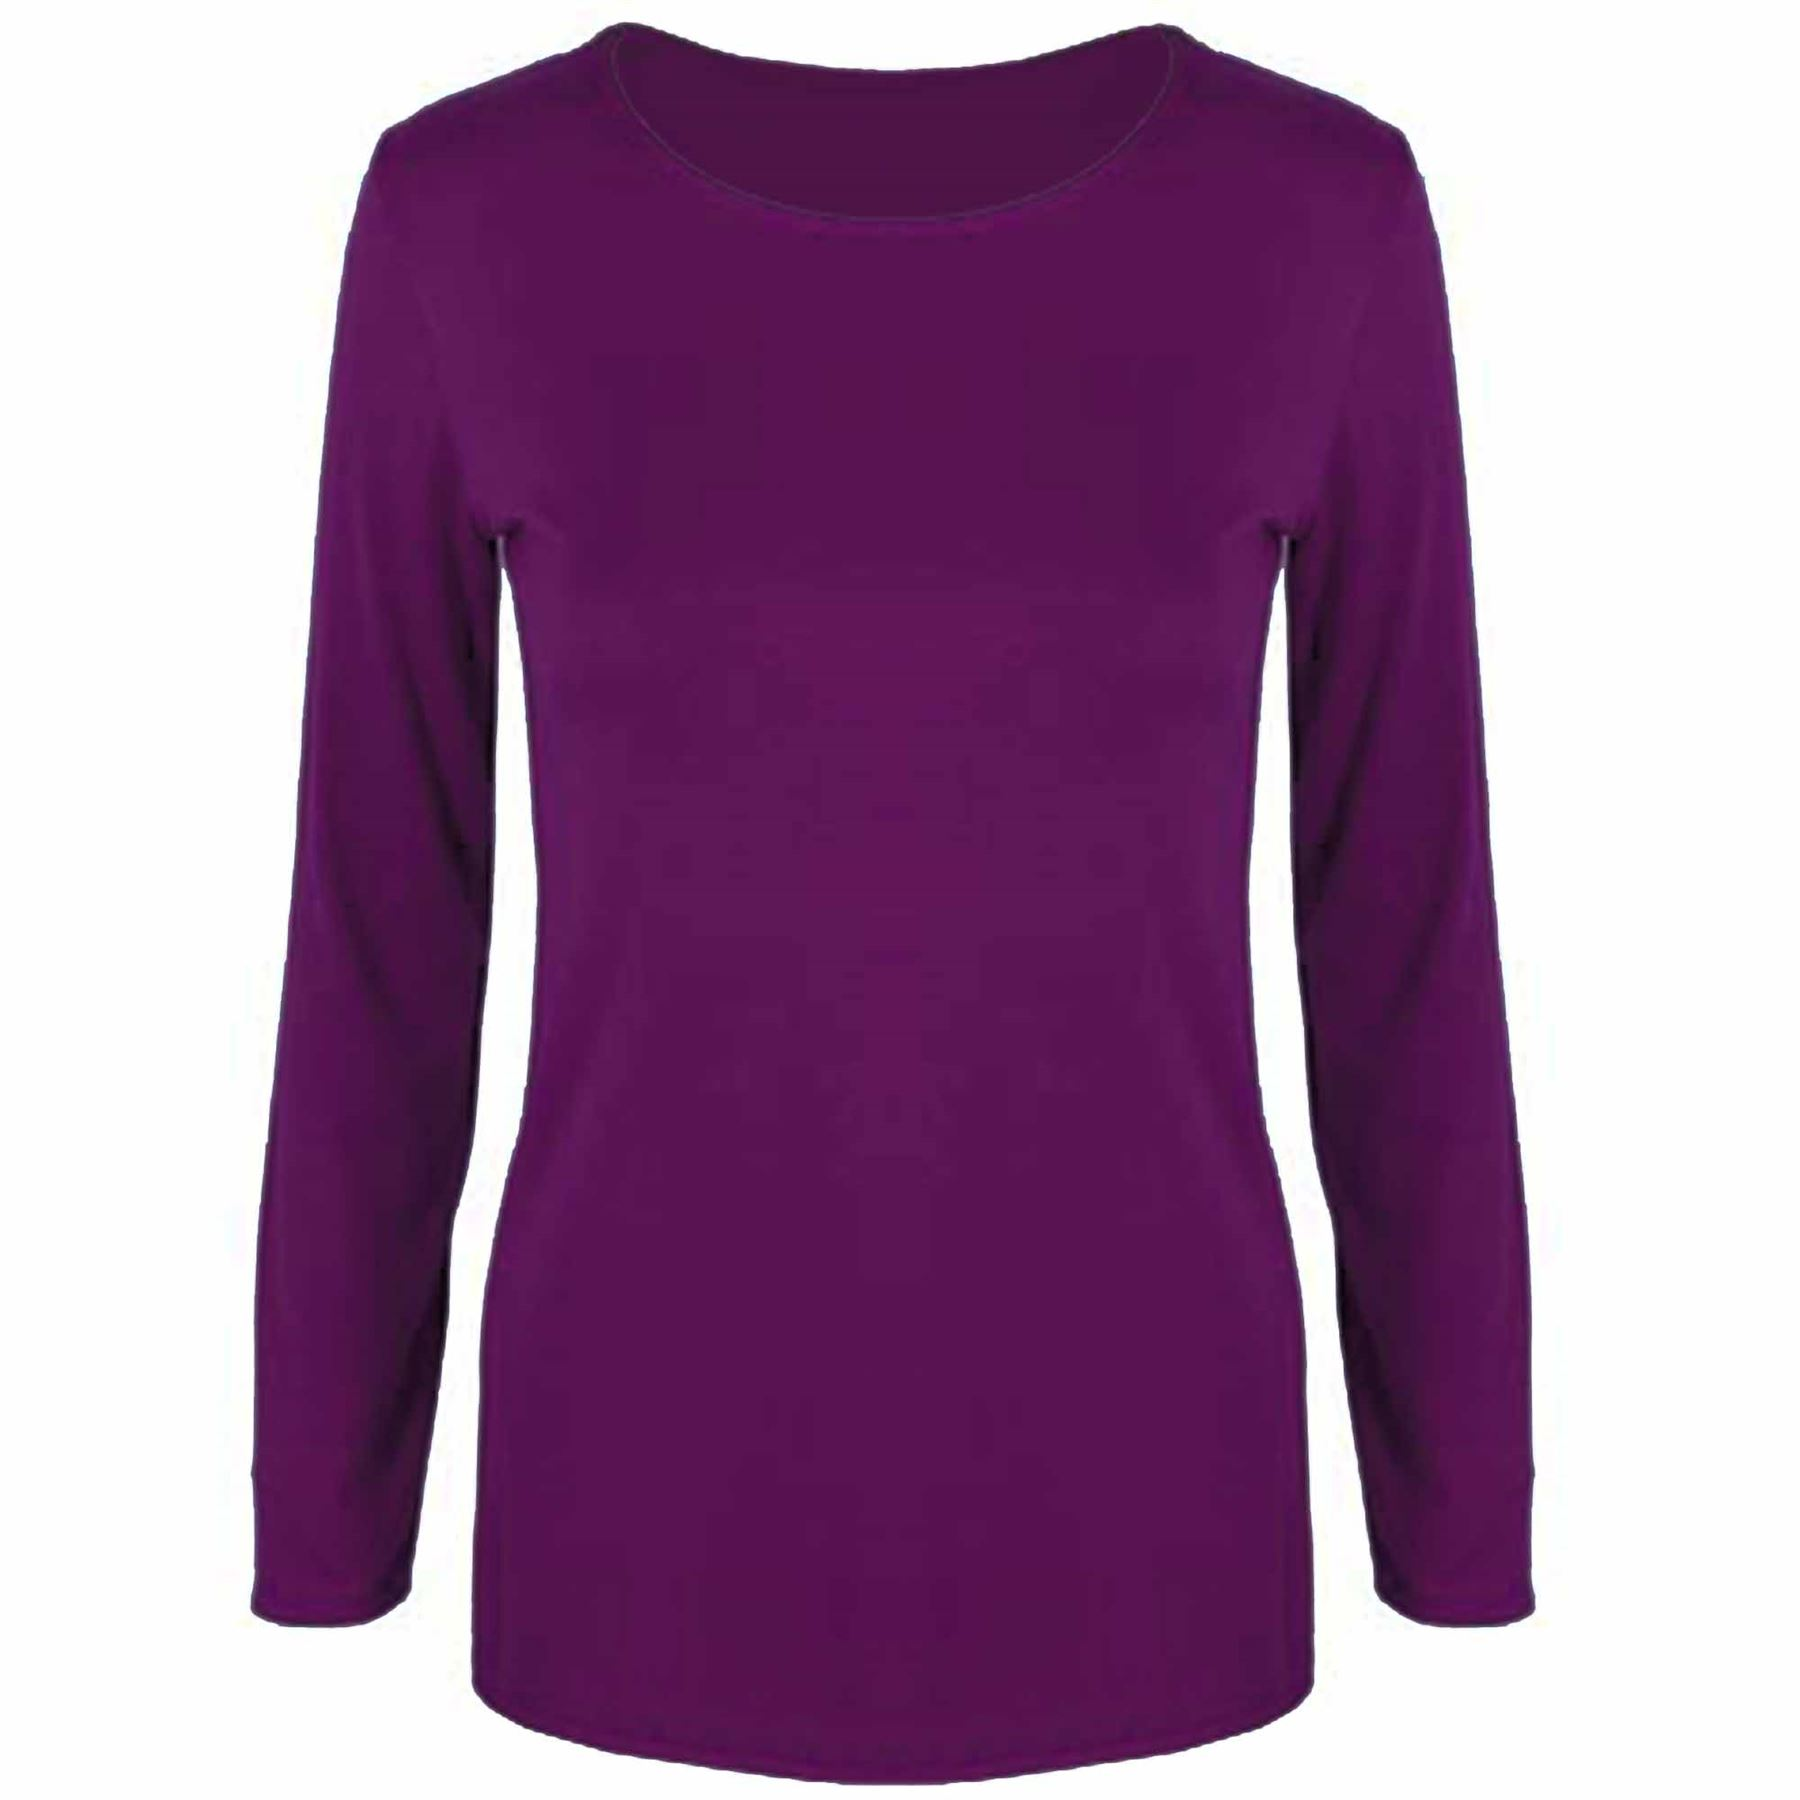 Womens t shirt ladies plain casual long sleeve fit round for Misses long sleeve tee shirts